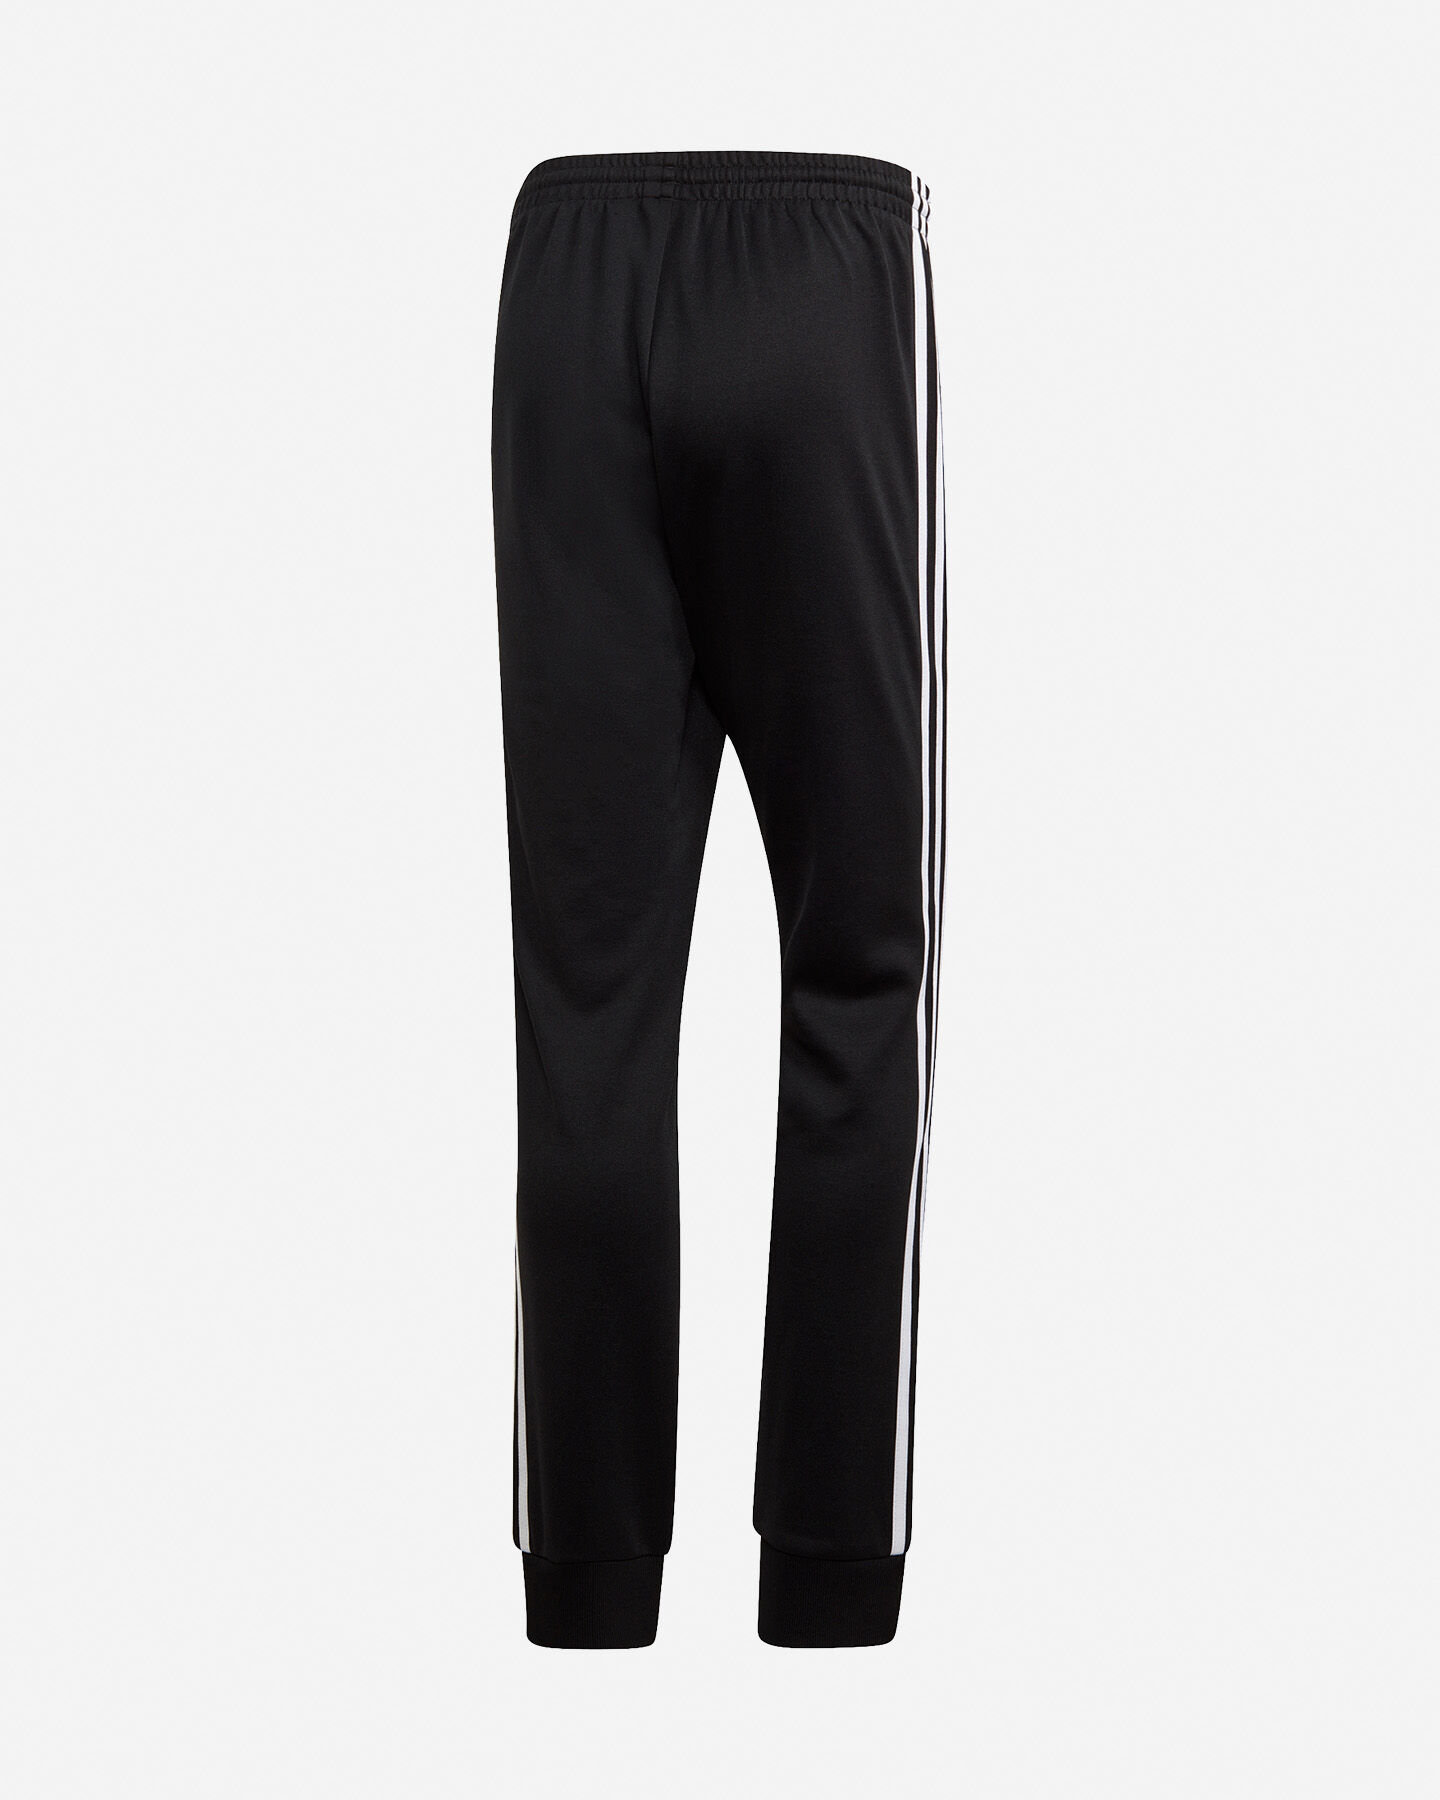 Pantalone ADIDAS SST TRACK M S5210900 scatto 1